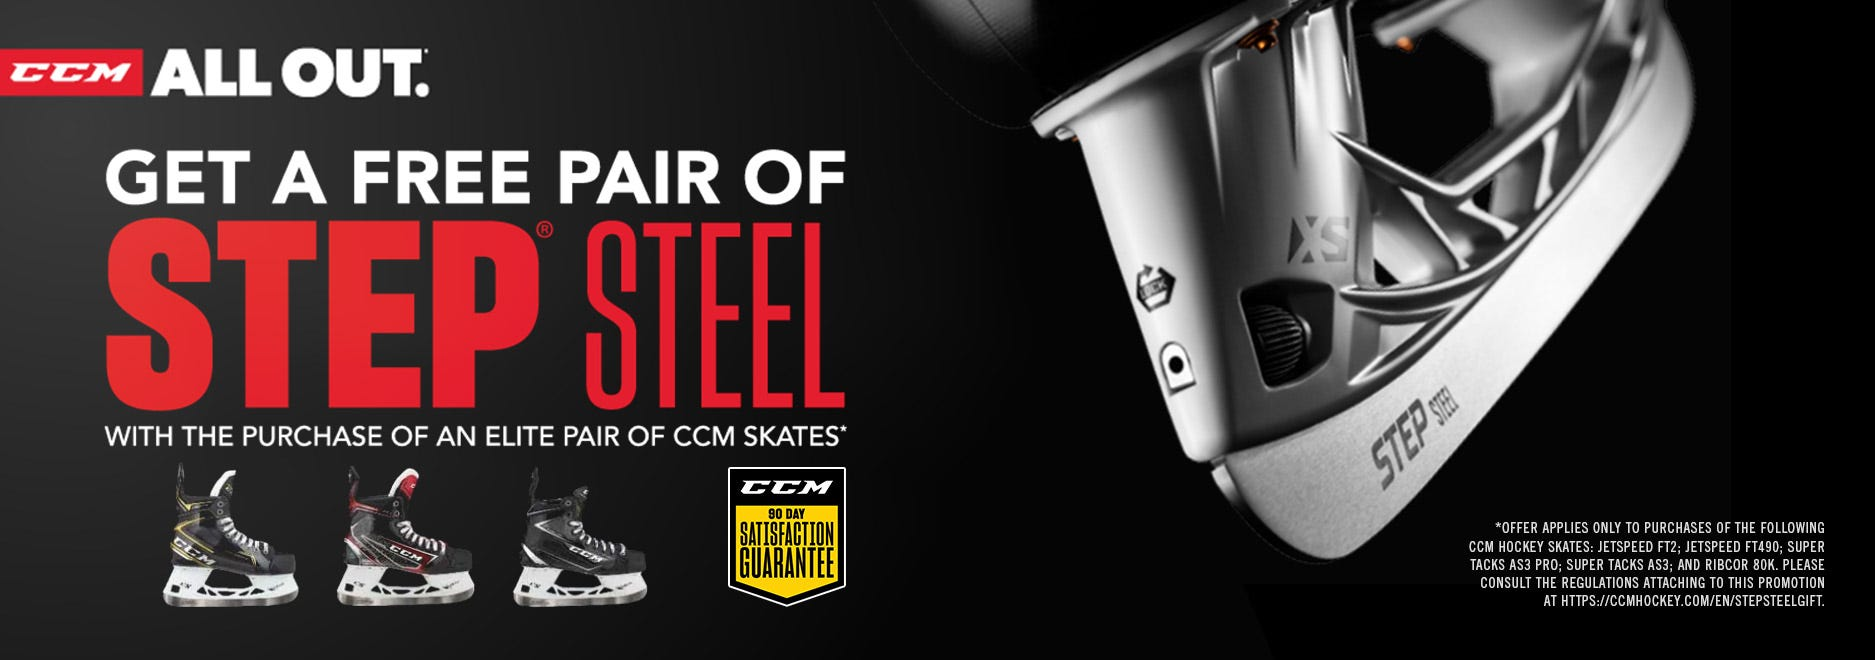 Free Step Steel with CCM Premier Skates